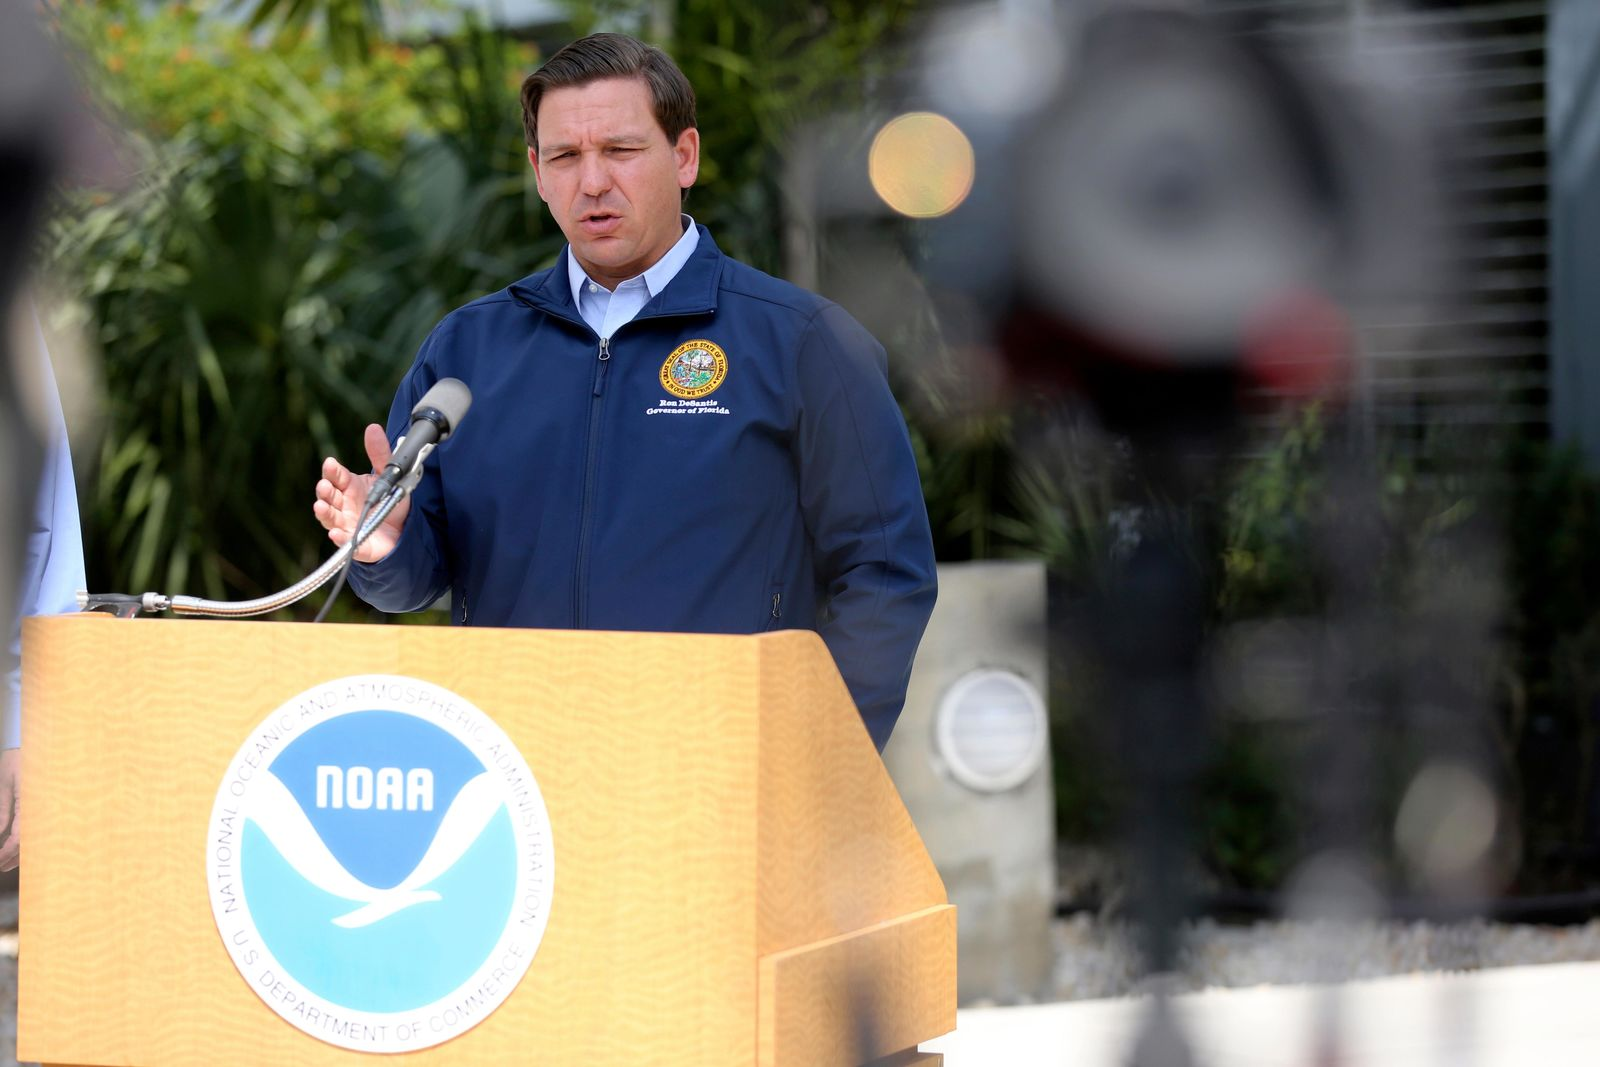 Florida Gov. Ron DeSantis speaks about Tropical Storm Dorian outside of the the National Hurricane Center, Thursday, Aug. 29, 2019, in Miami. (AP Photo/Lynne Sladky)